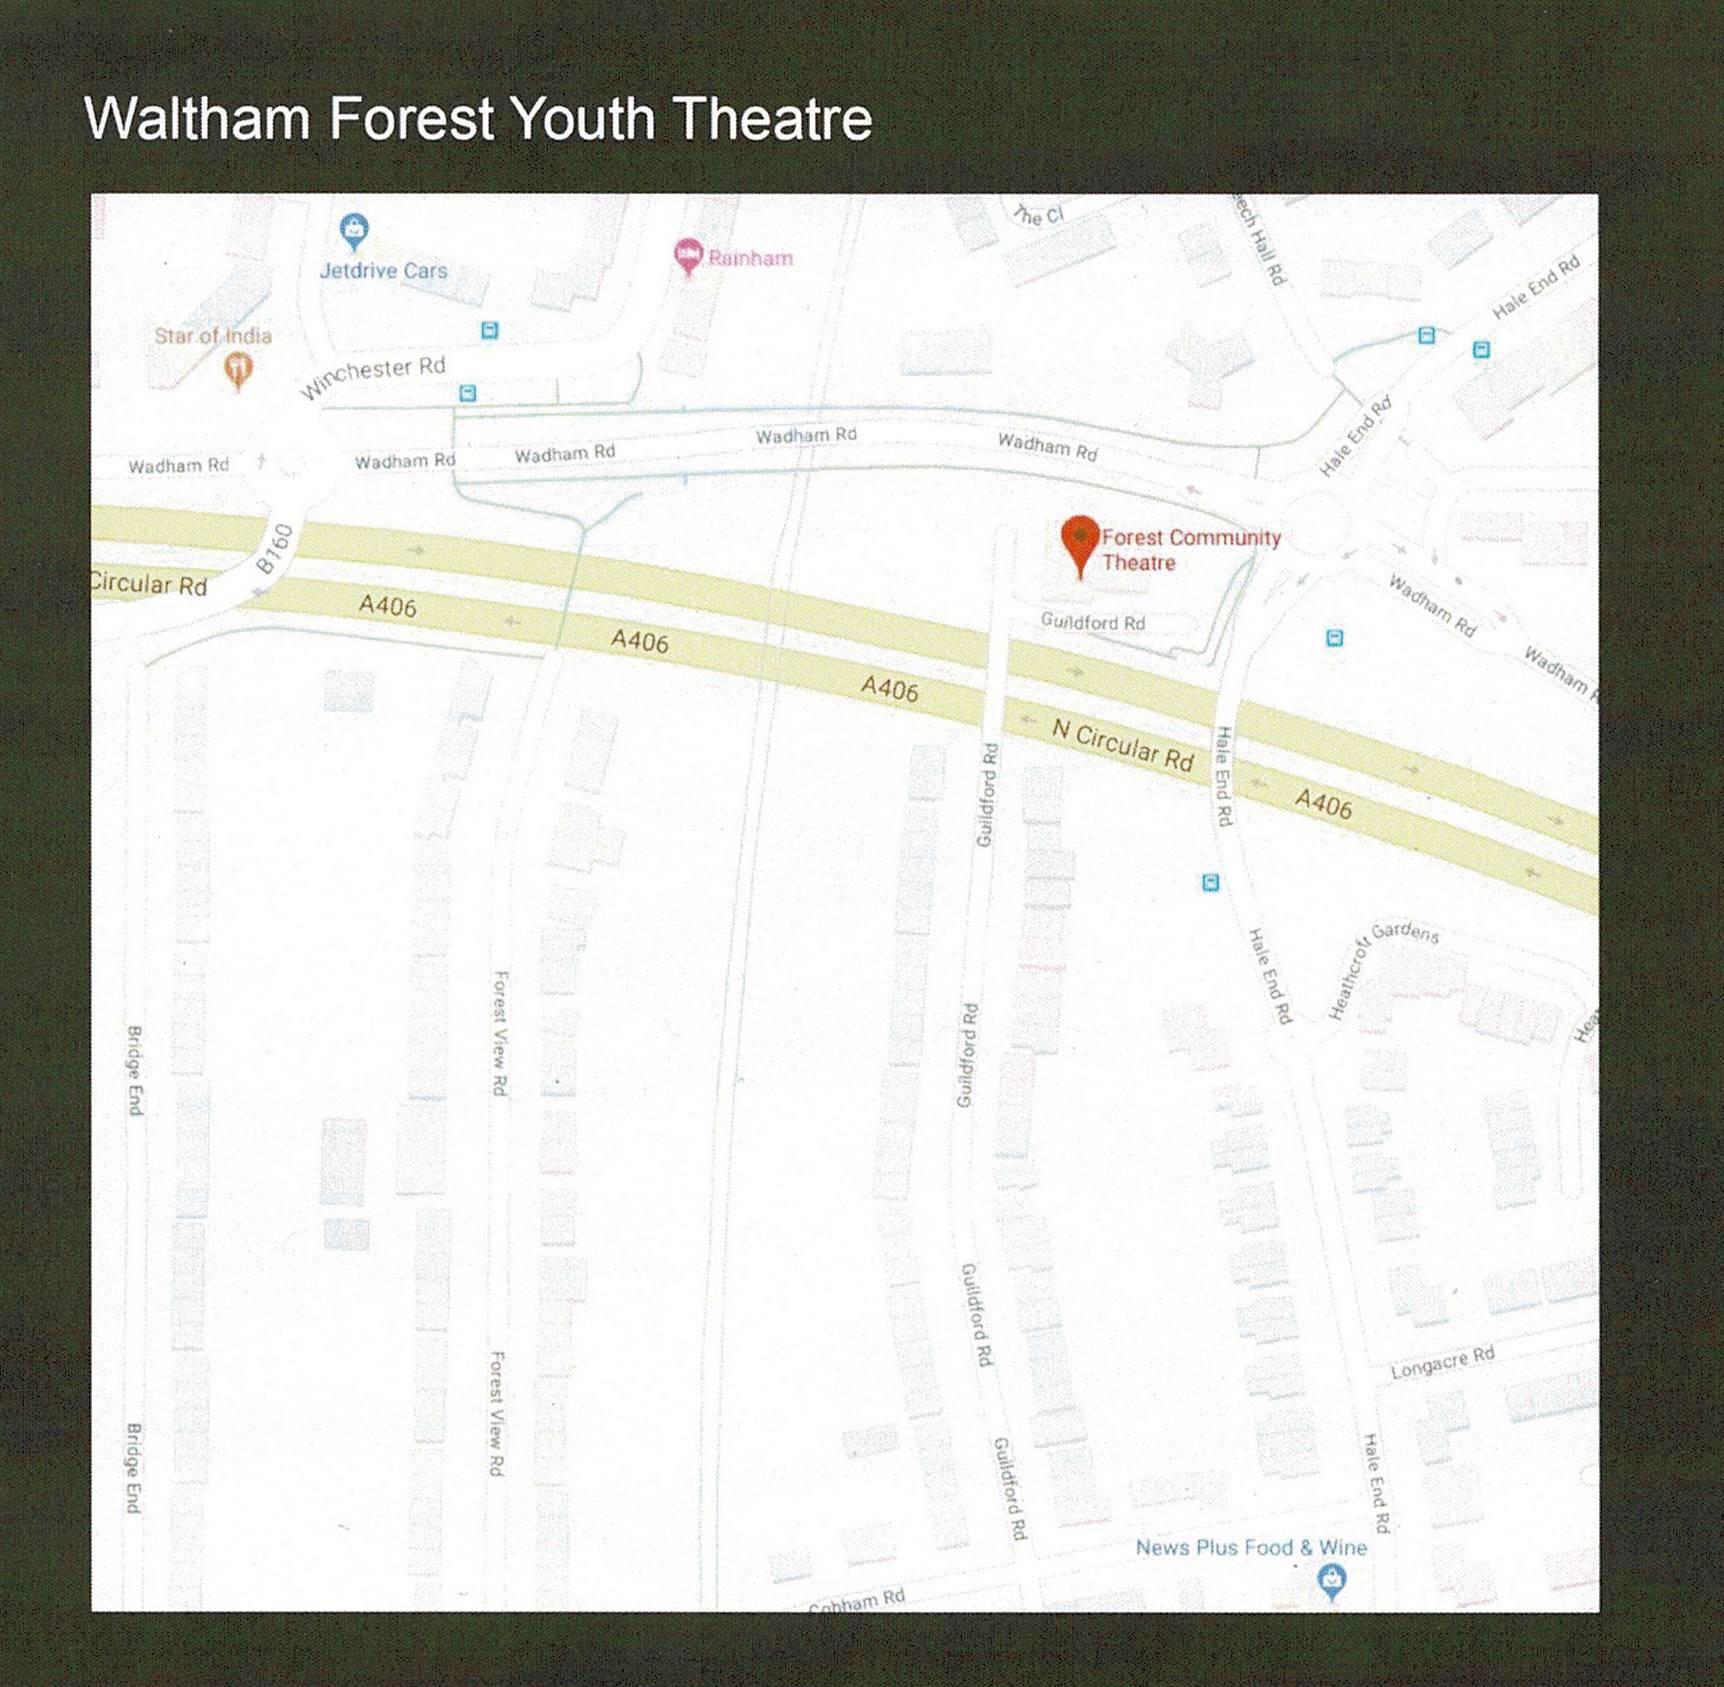 PRODUCING A PLAY for 10 to 16 year olds at Waltham Forest Youth Theatre